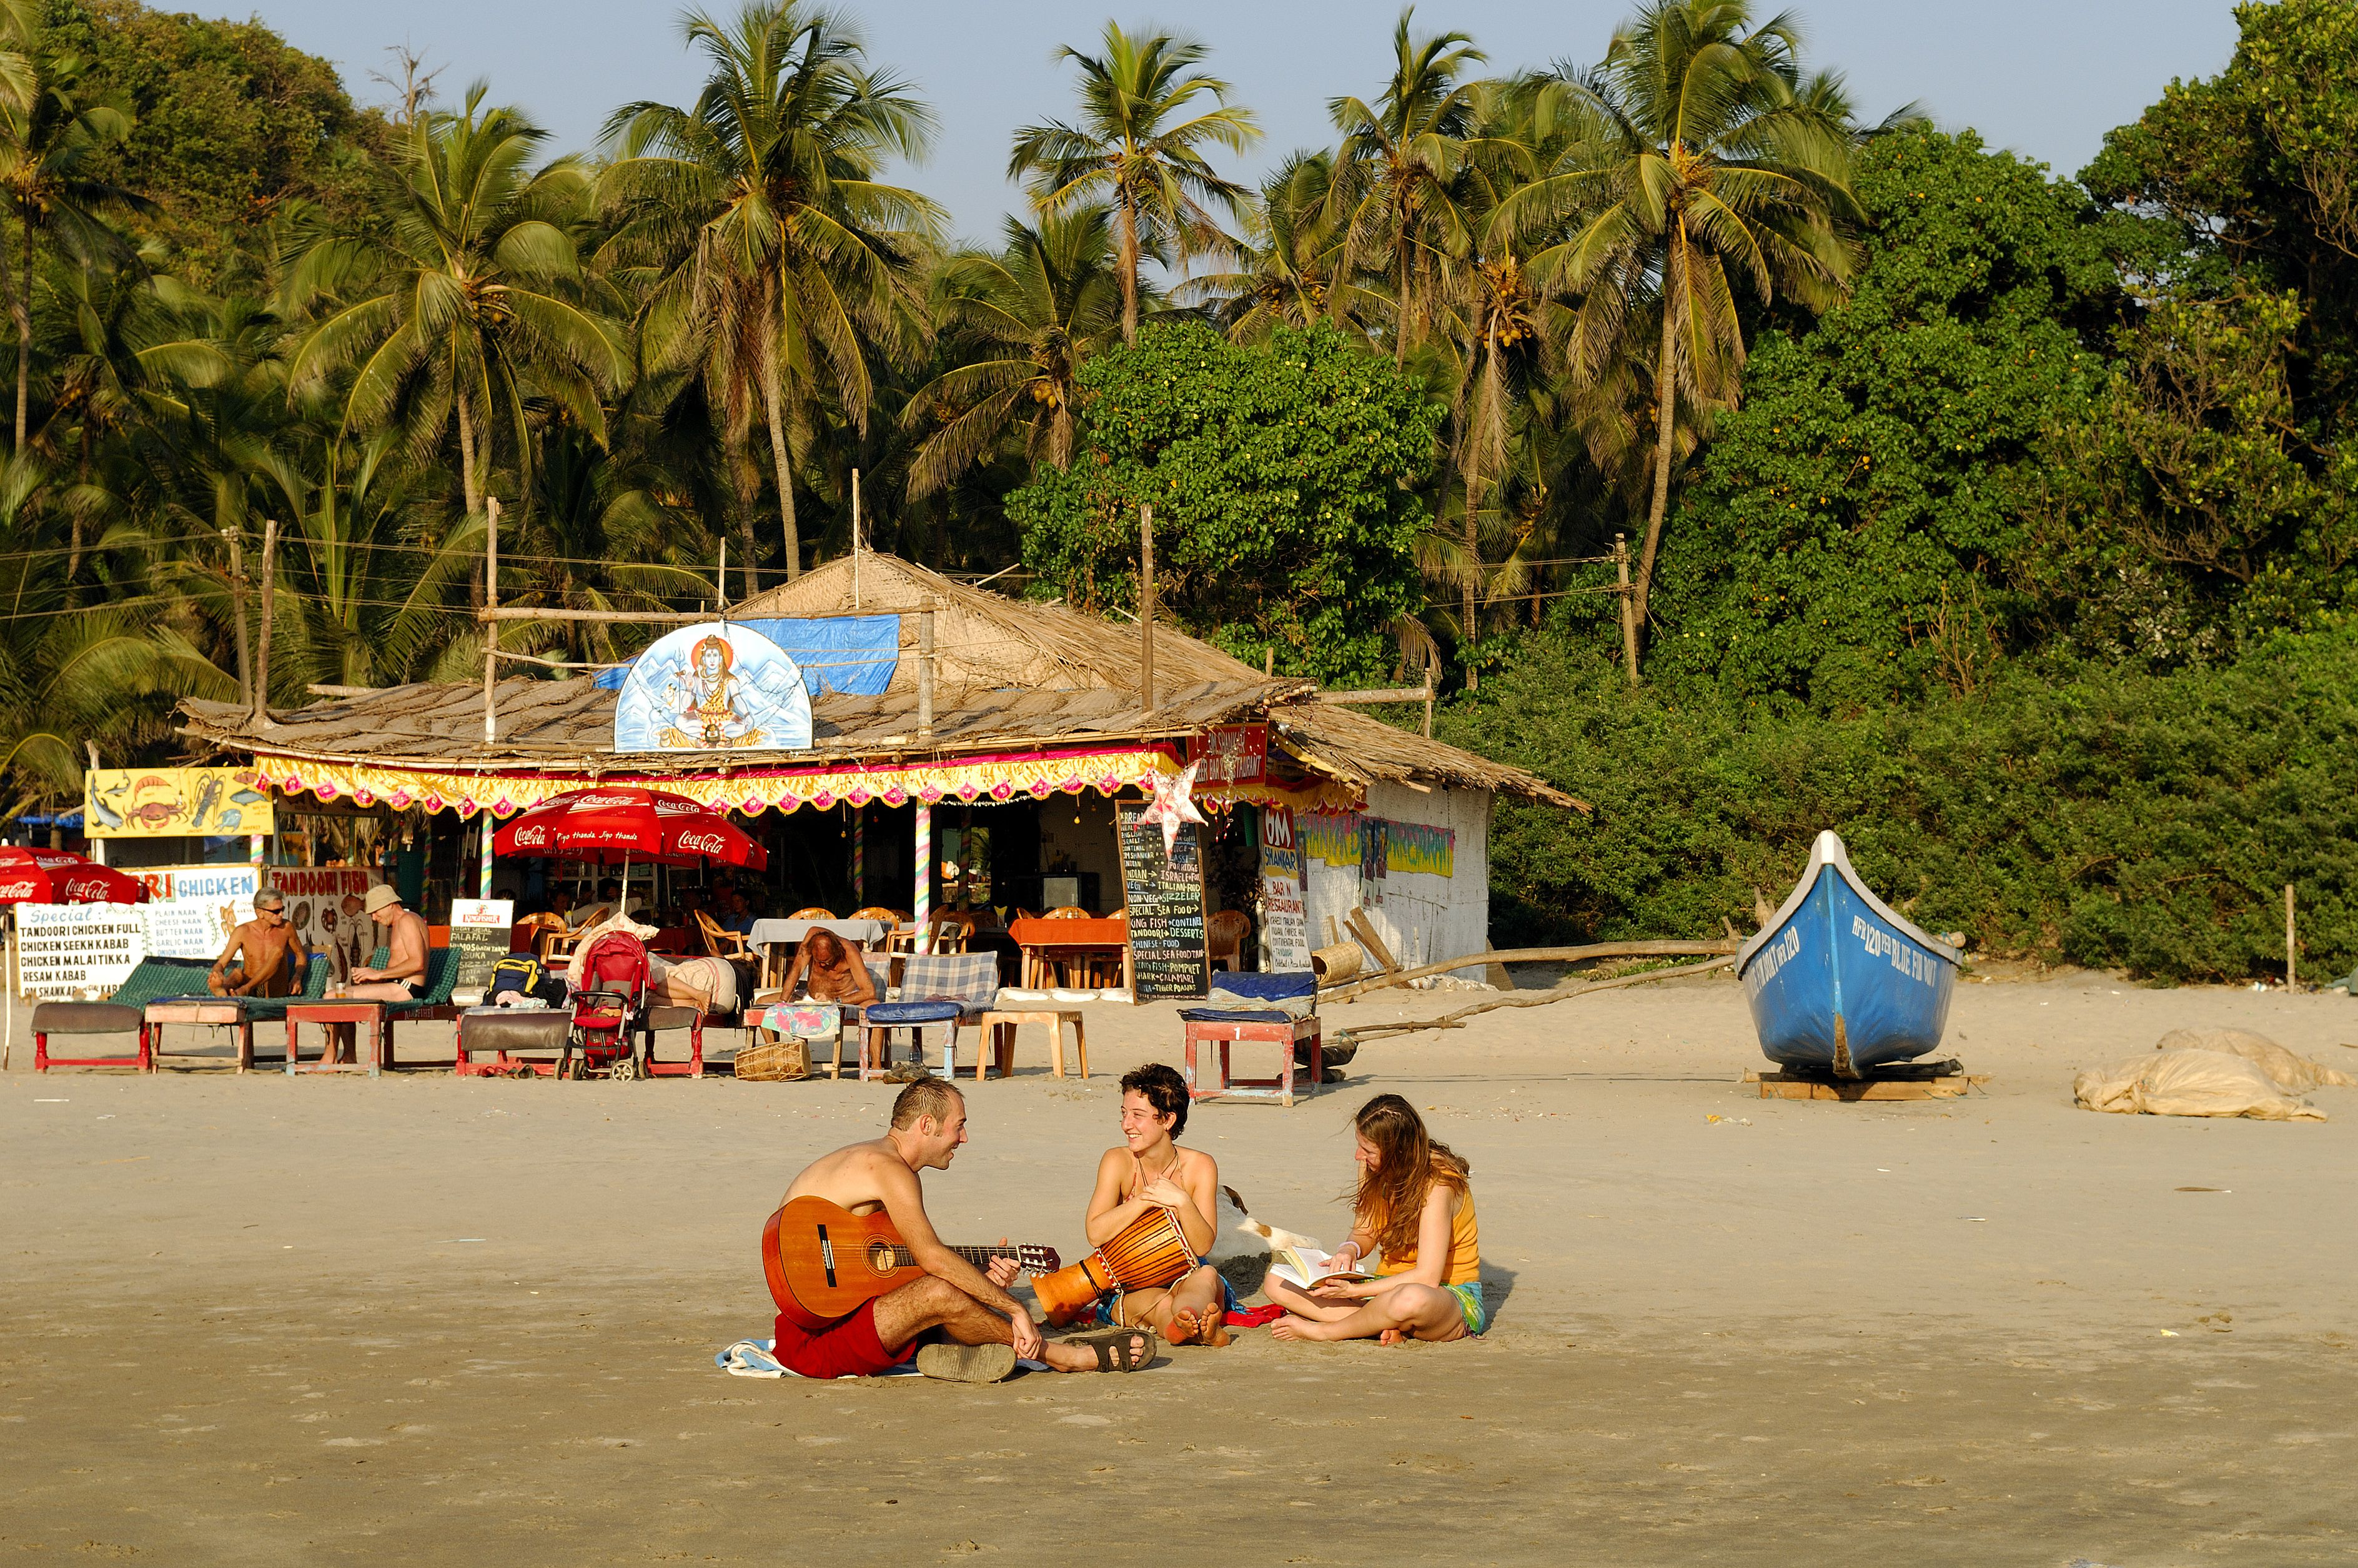 Tourists on a beach in Goa.